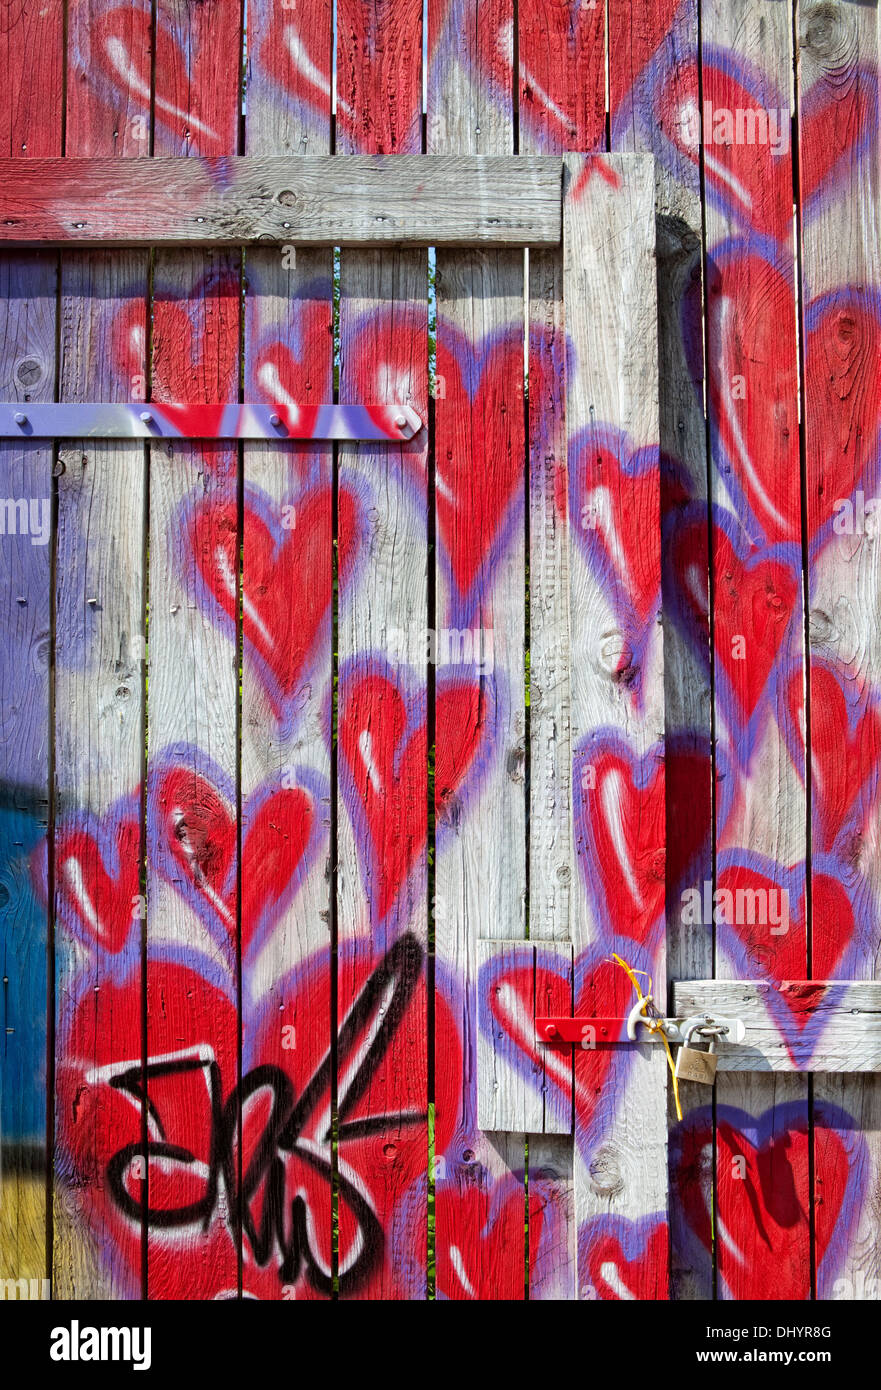 Red hearts painted on a fence, graffiti, Germany, Europe - Stock Image